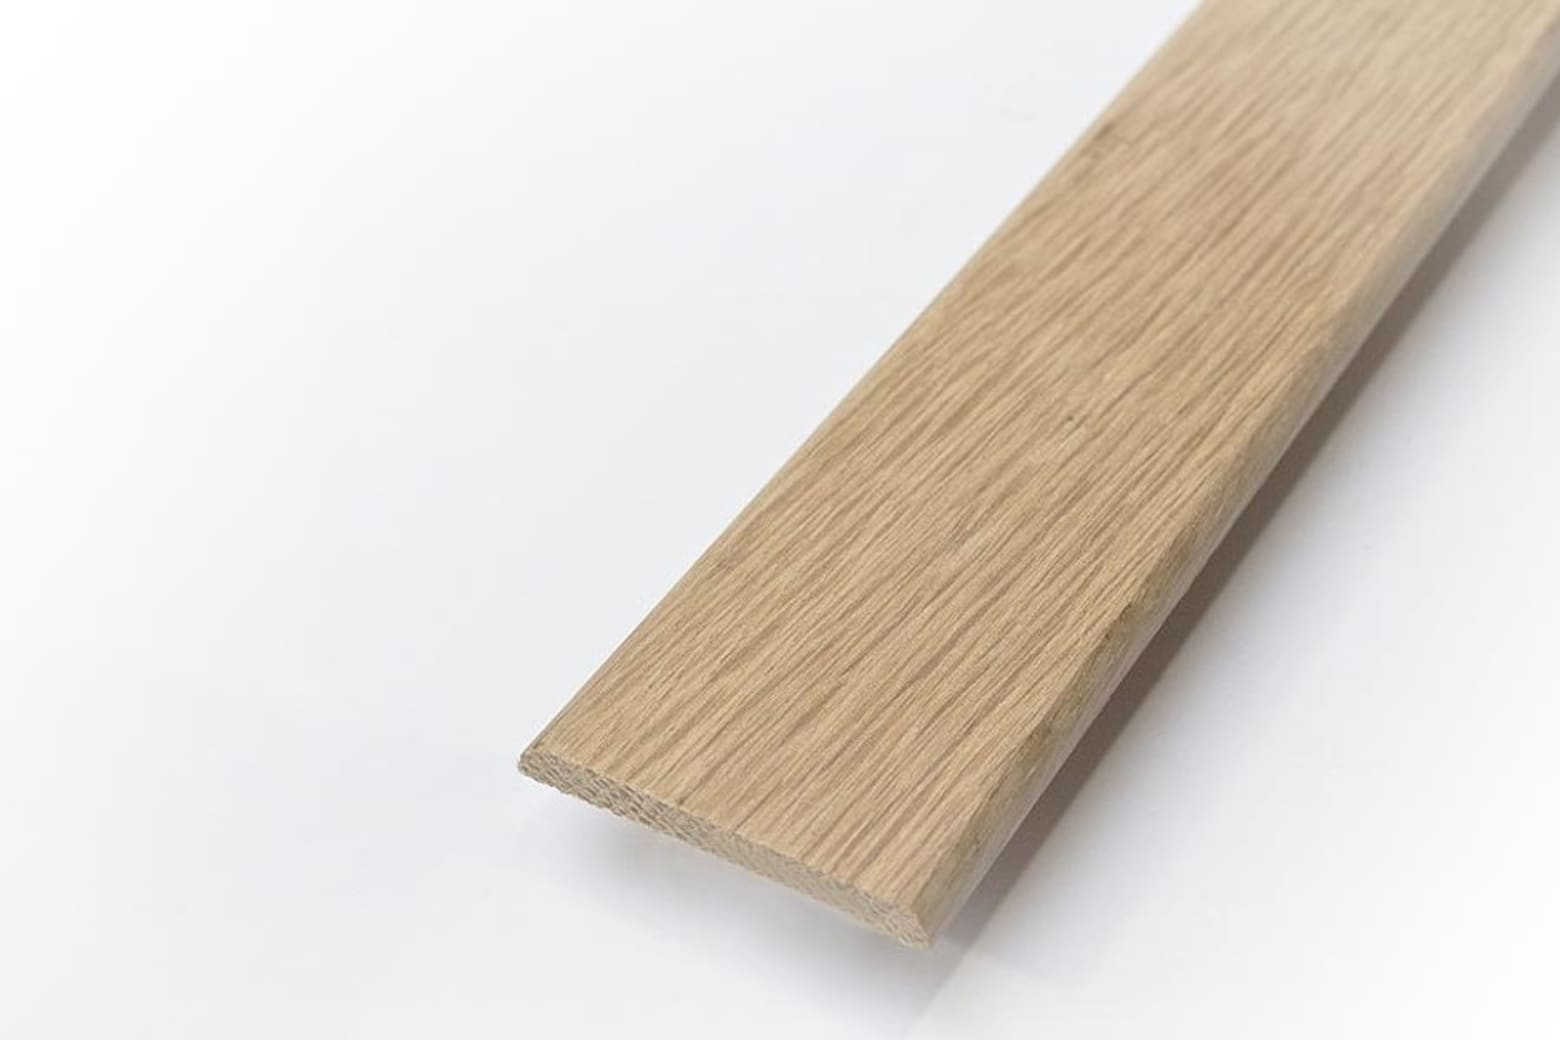 Solid Oak Flat Bar Unfinished 6mm By 44mm By 960mm